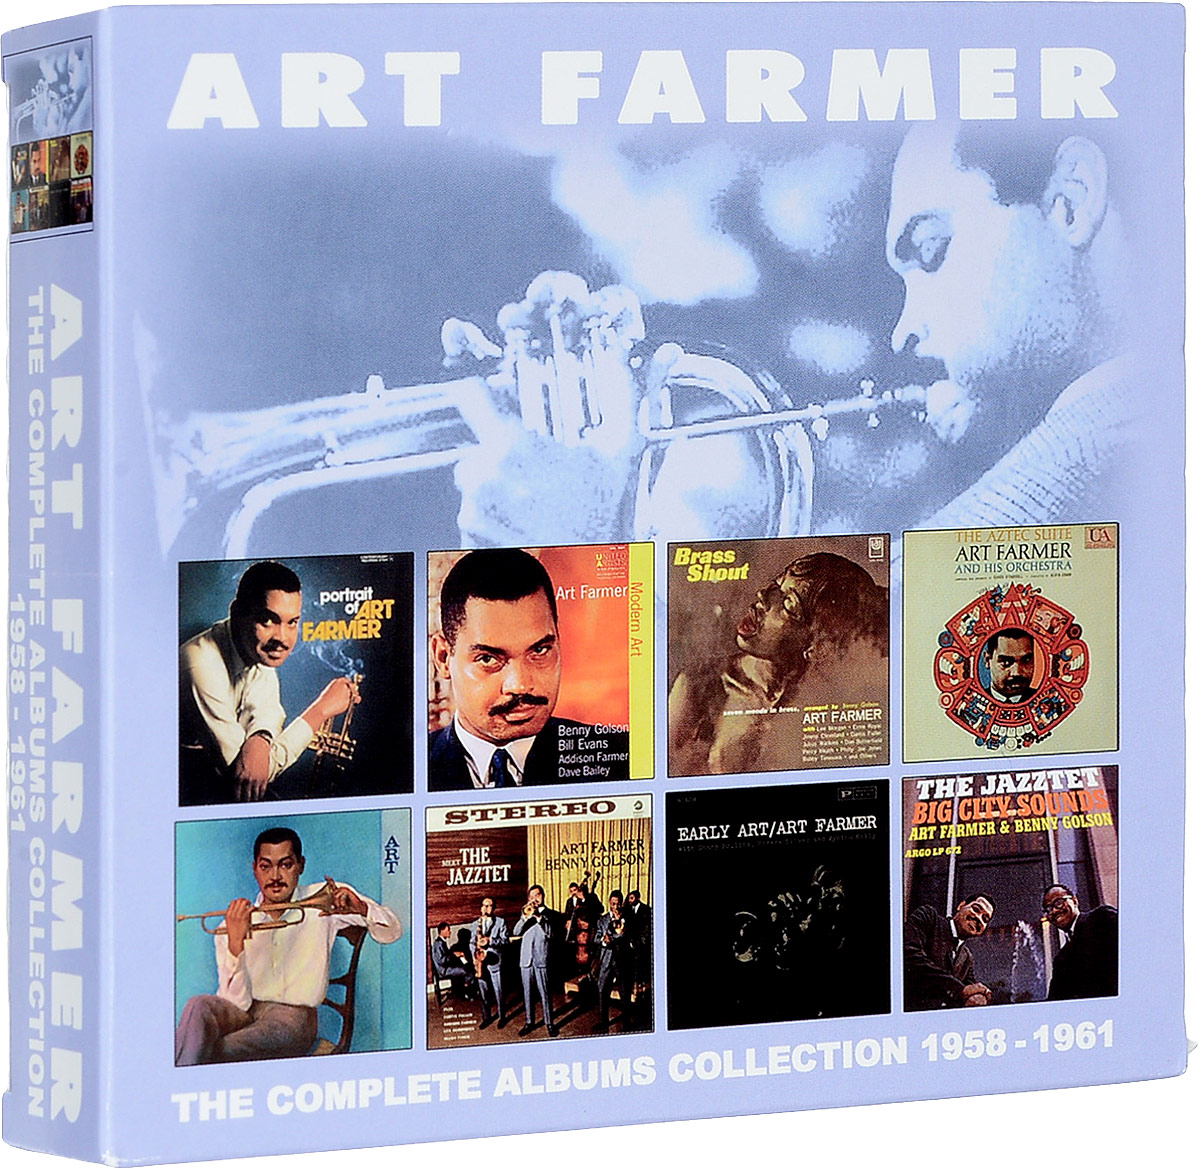 Арт Фармер Art Farmer. The Complete Albums Collection 1958 - 1961 (4 CD) милен фармер mylene farmer bleu noir 2 lp